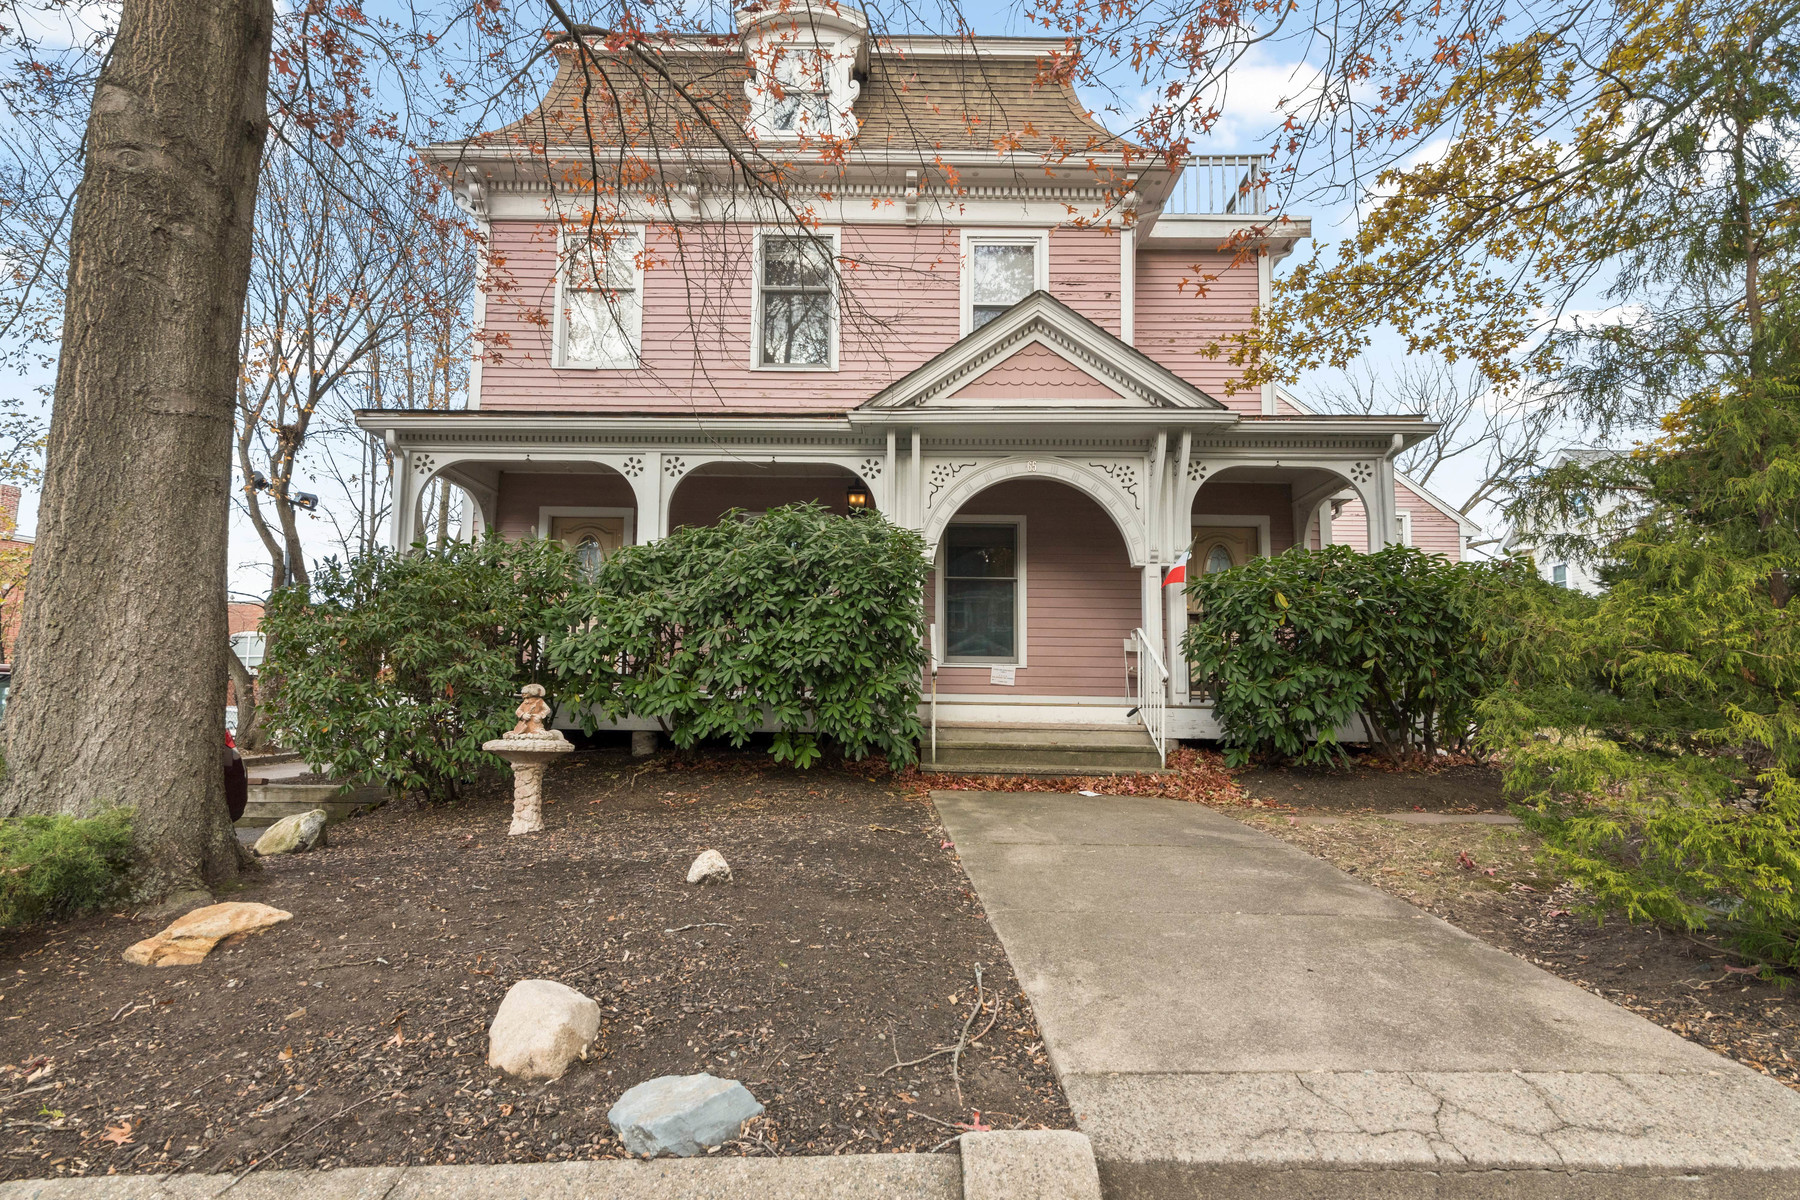 Single Family Home for Sale at 65 Jefferson St., Newton 65 Jefferson St Newton, Massachusetts 02458 United States